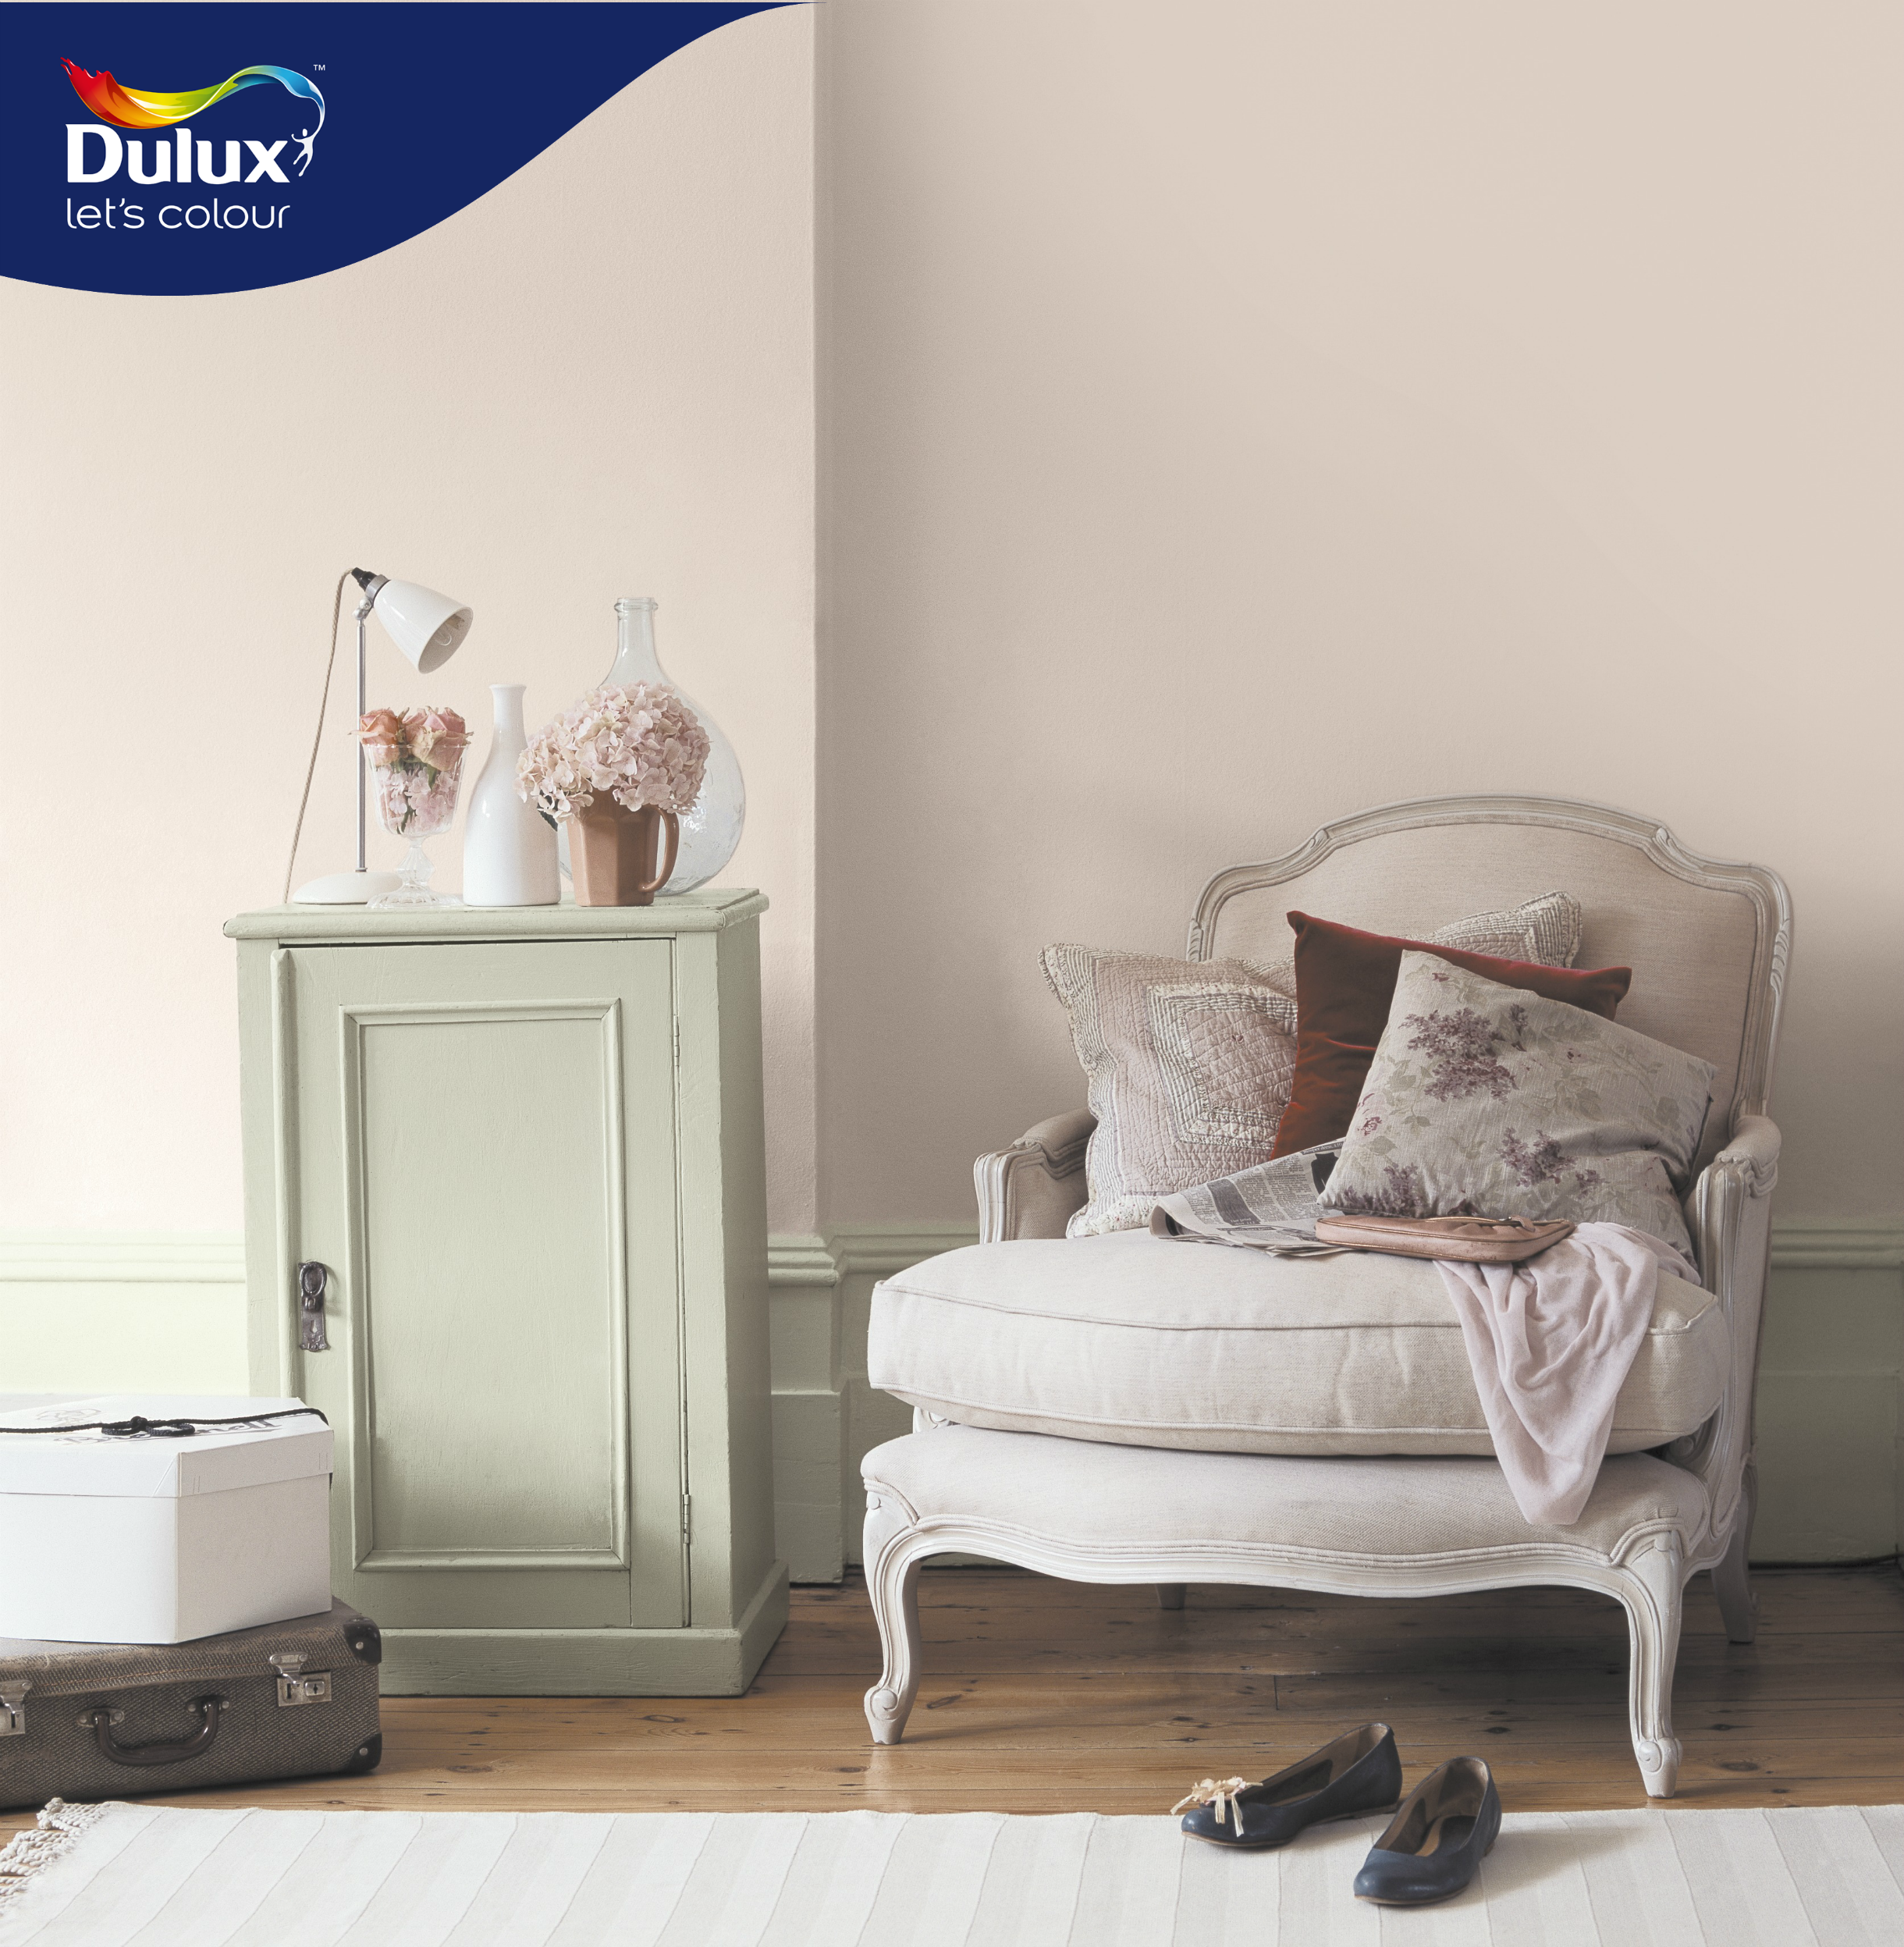 Bring out the lady within you with soft hues of white and vanilla dulux white